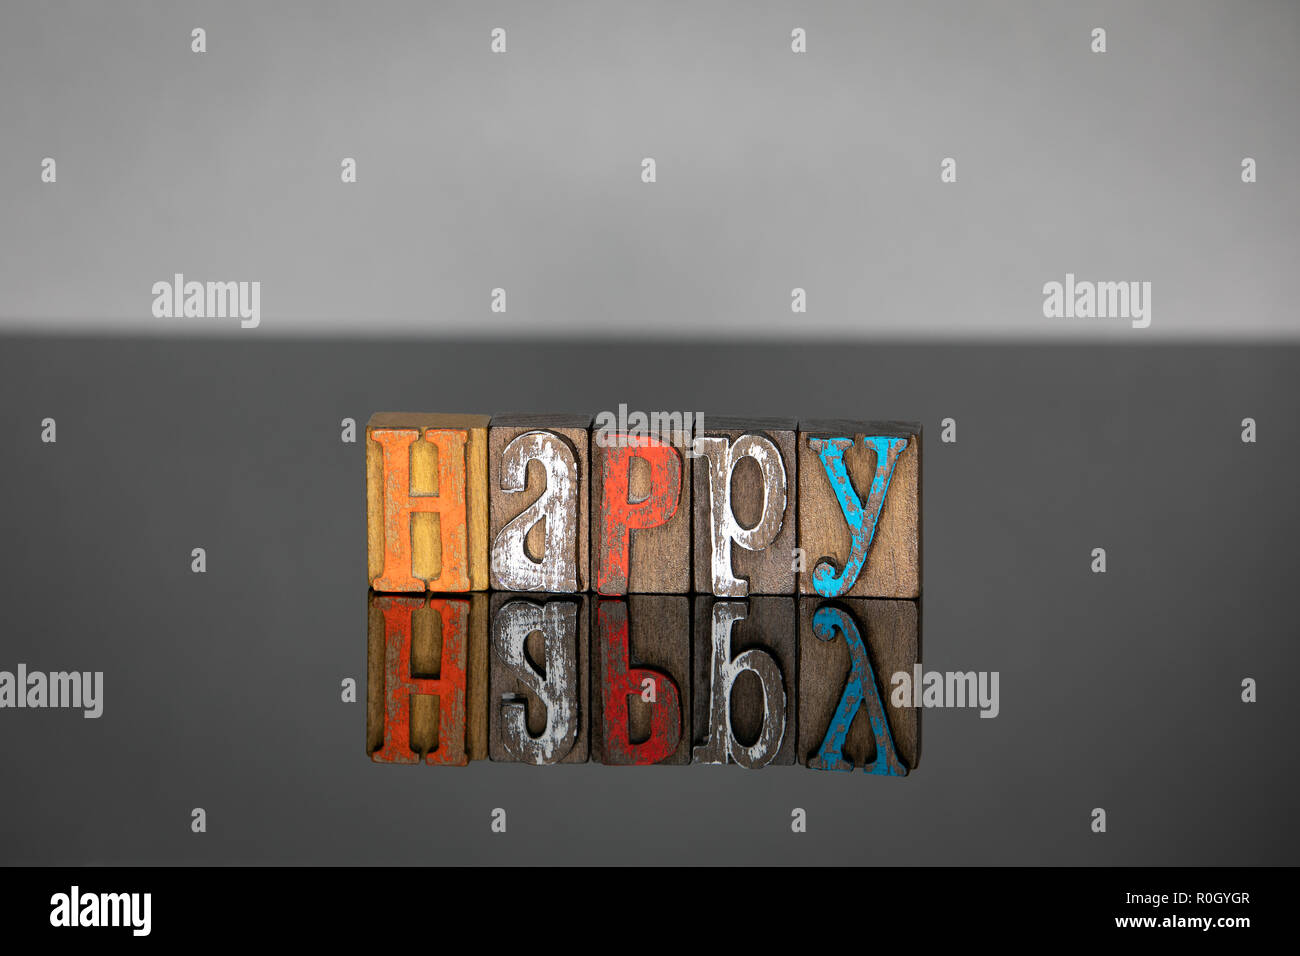 Happy word from colored wooden letters  - Stock Image